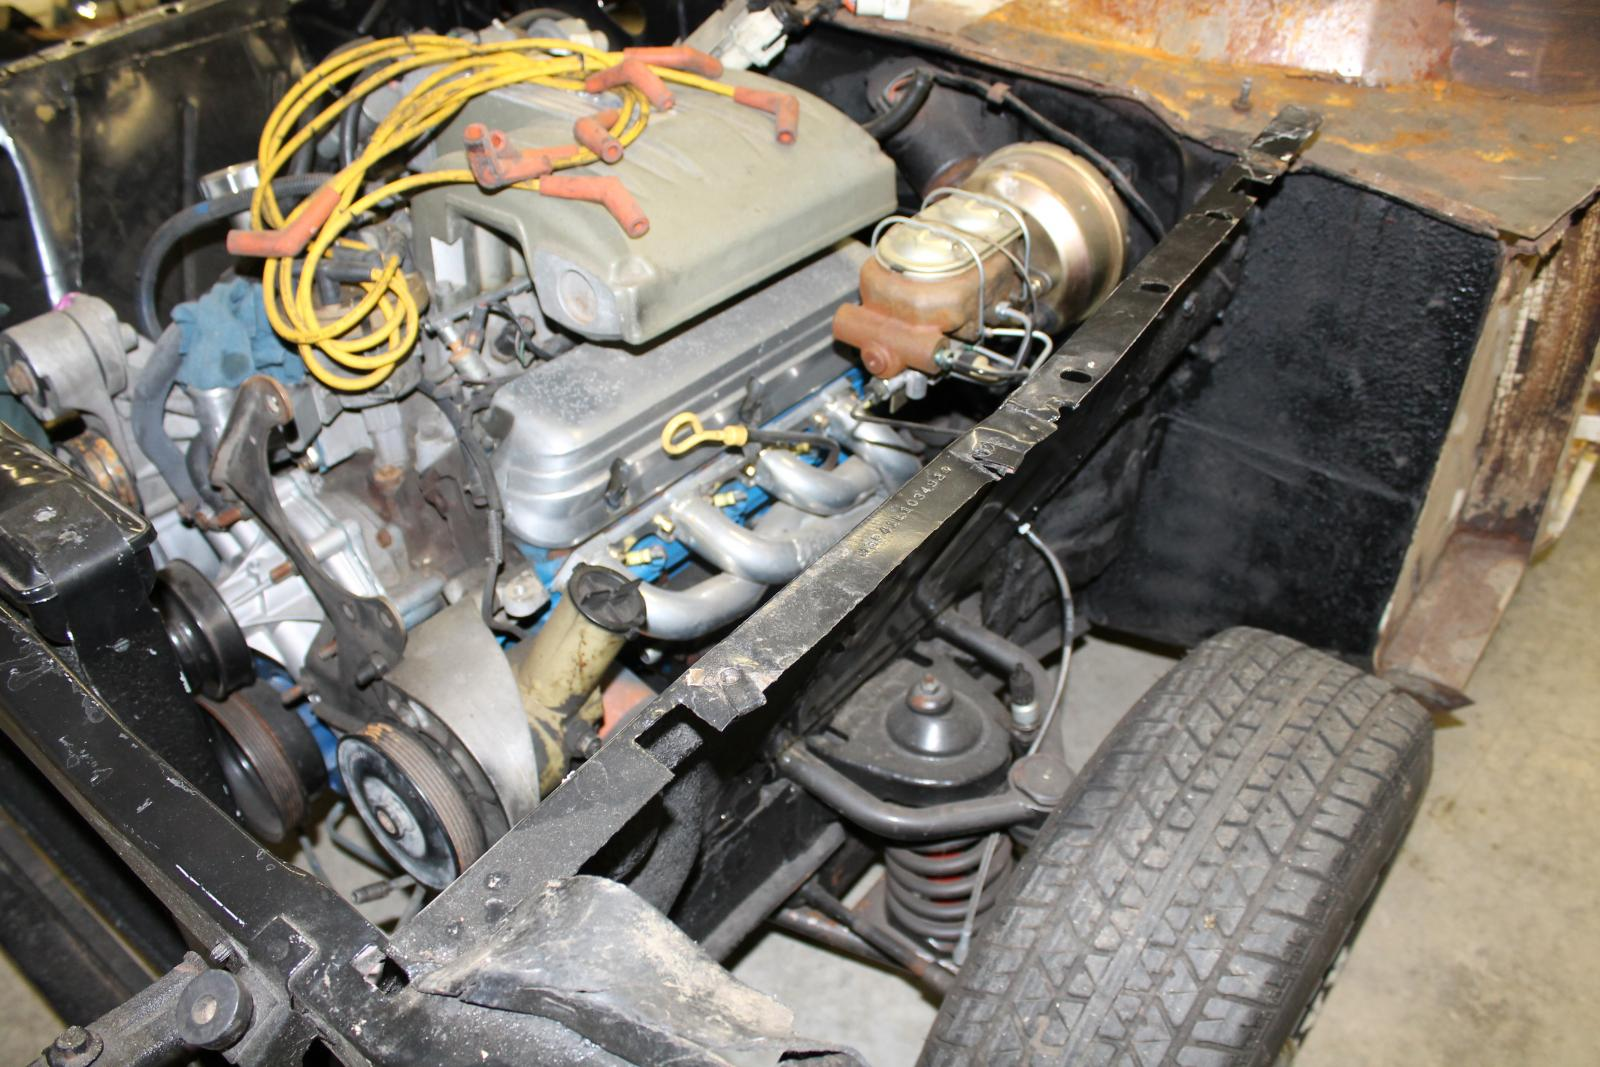 wiring a 1990 fuel injected 5 0 into a 63 ford fairlane